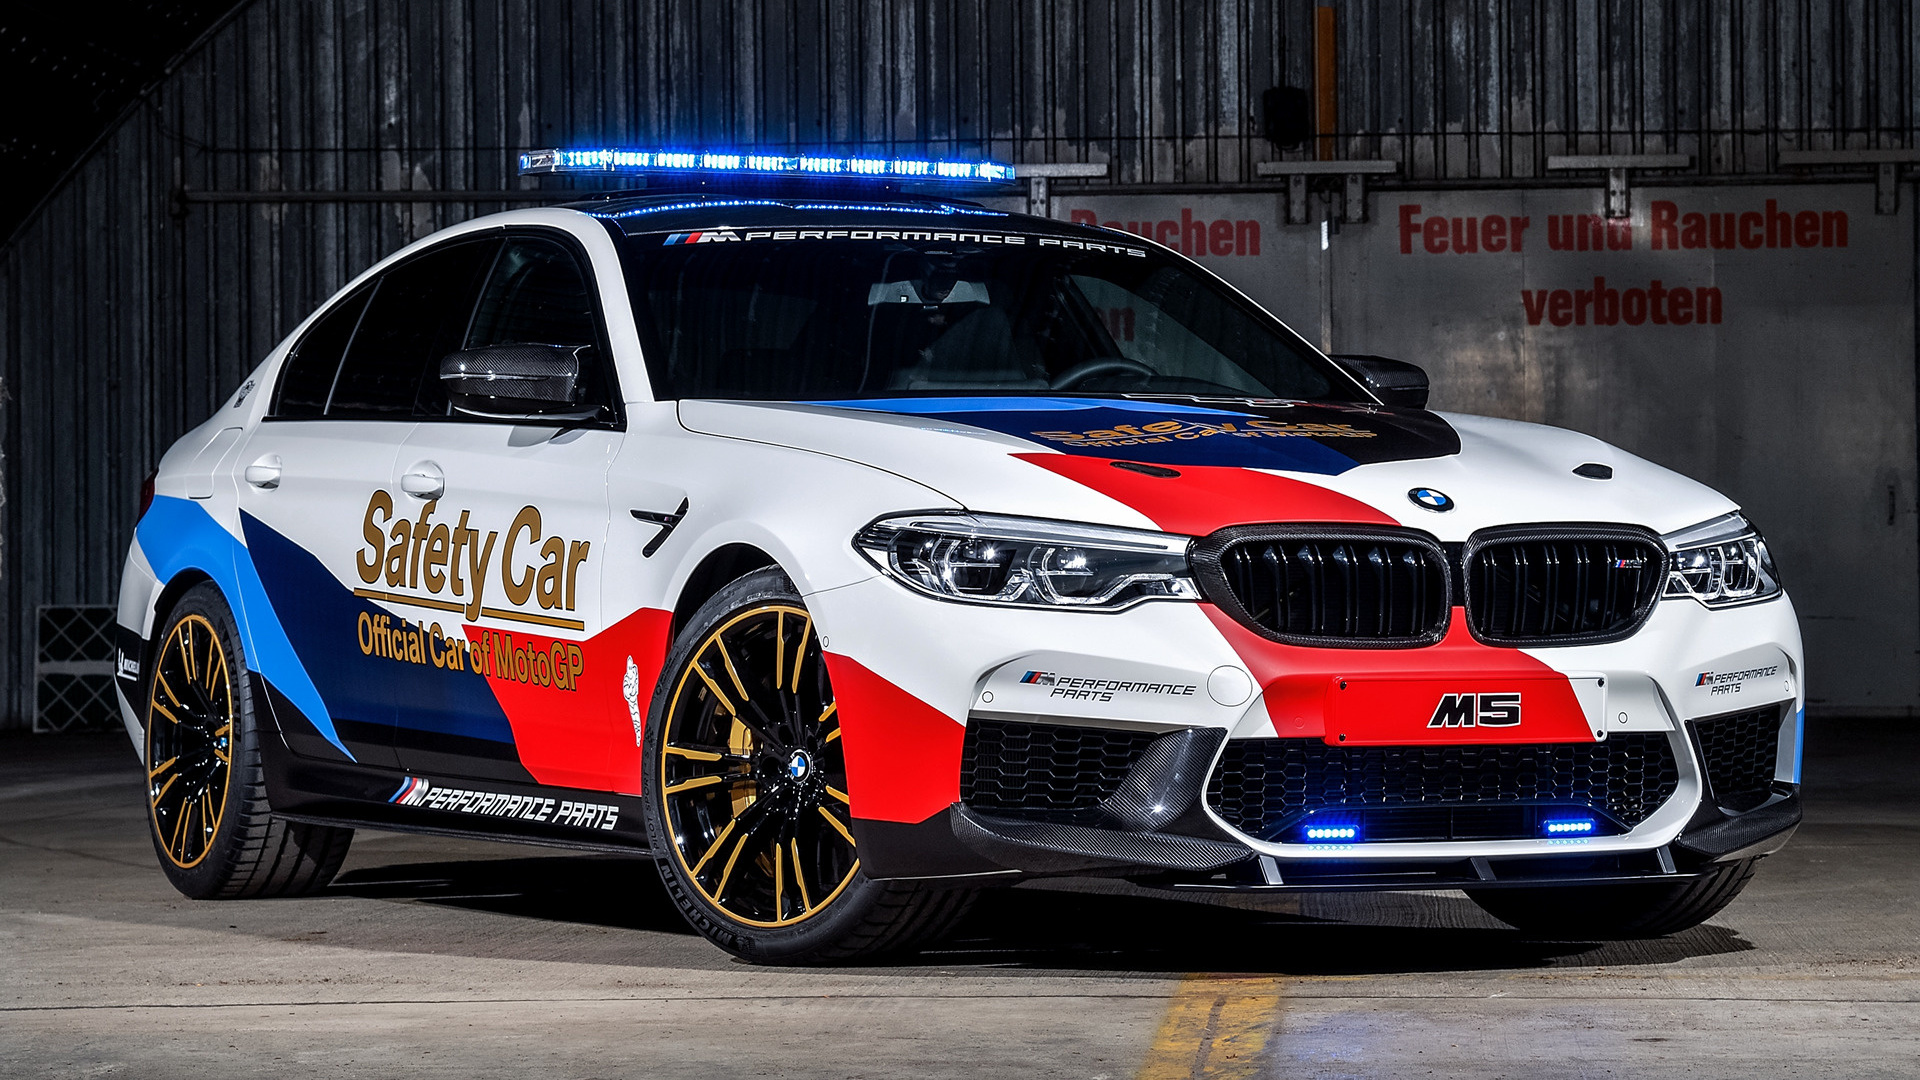 2018 Bmw M5 Motogp Safety Car Wallpapers And Hd Images